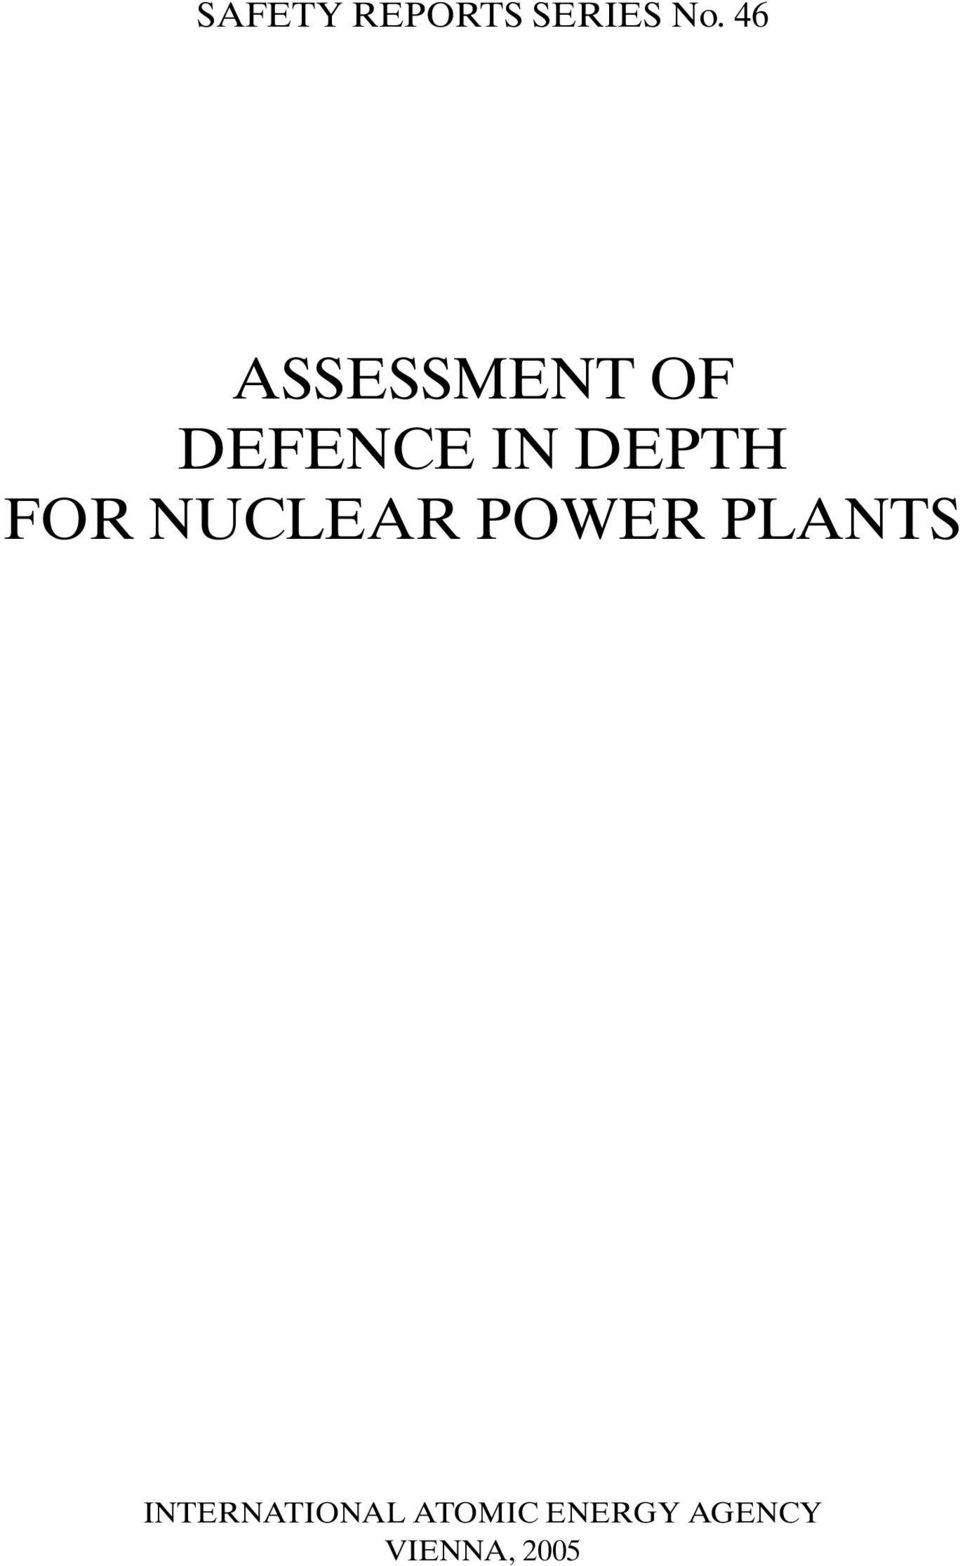 DEPTH FOR NUCLEAR POWER PLANTS